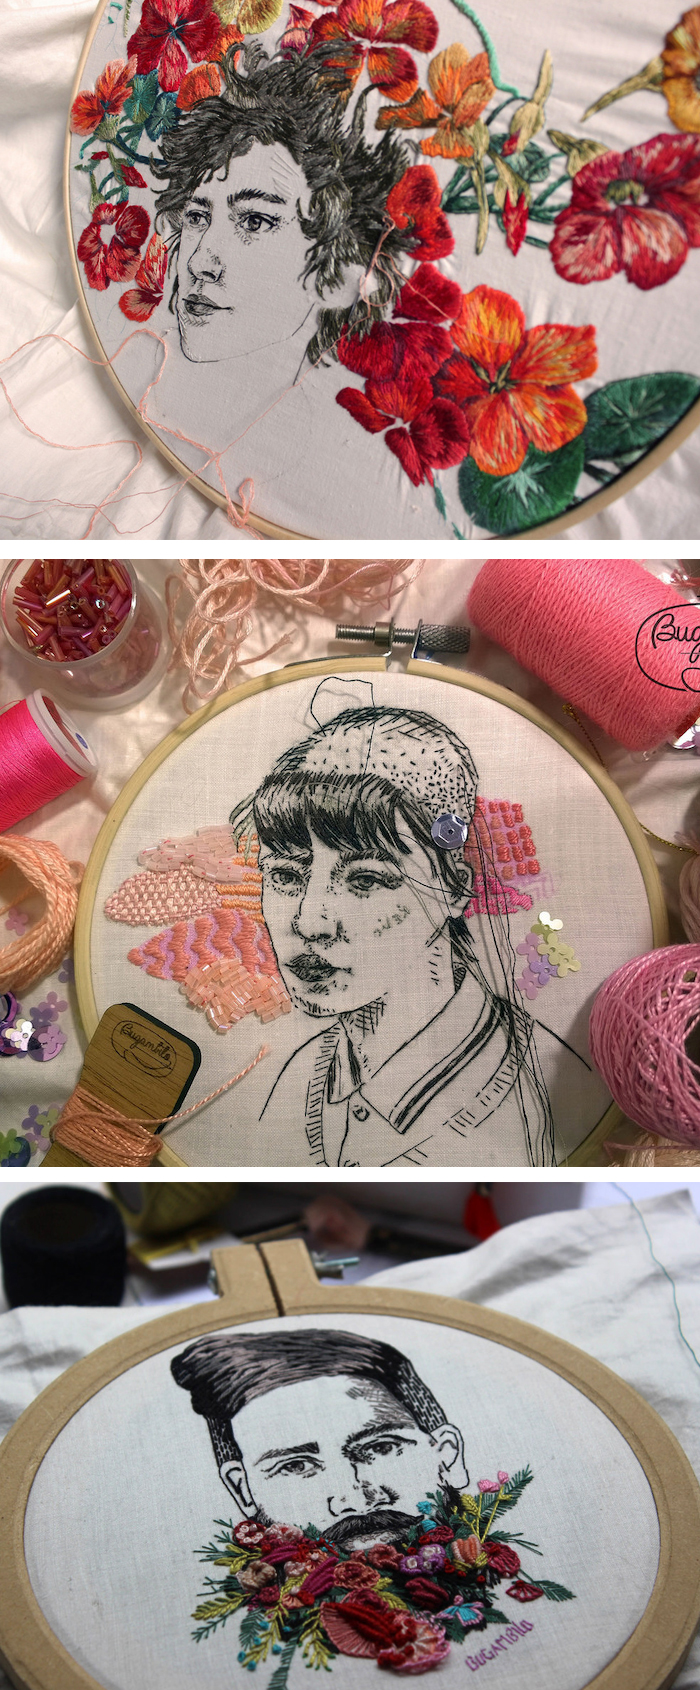 Embroidery by Bugambilo